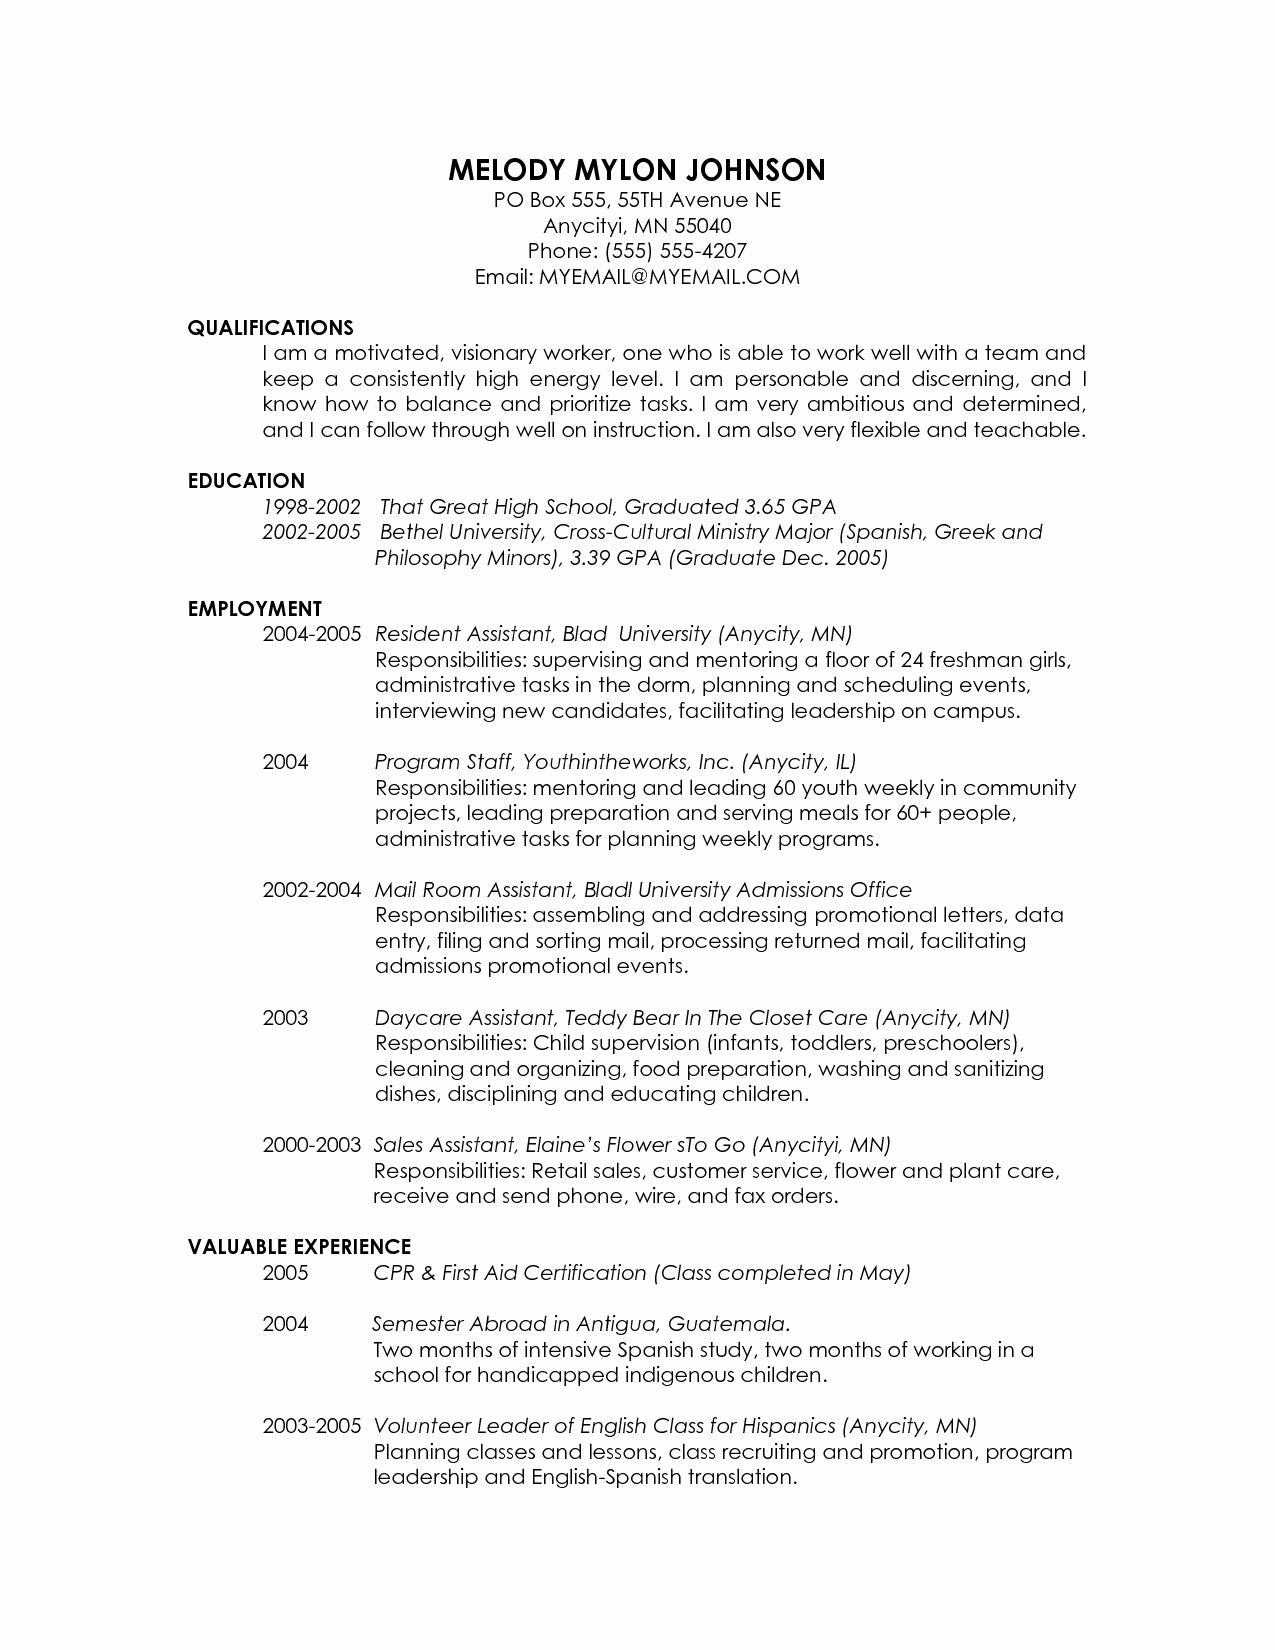 Resume for Graduate School Admission Template - Graduate School Resume Template Best Resume Templates for